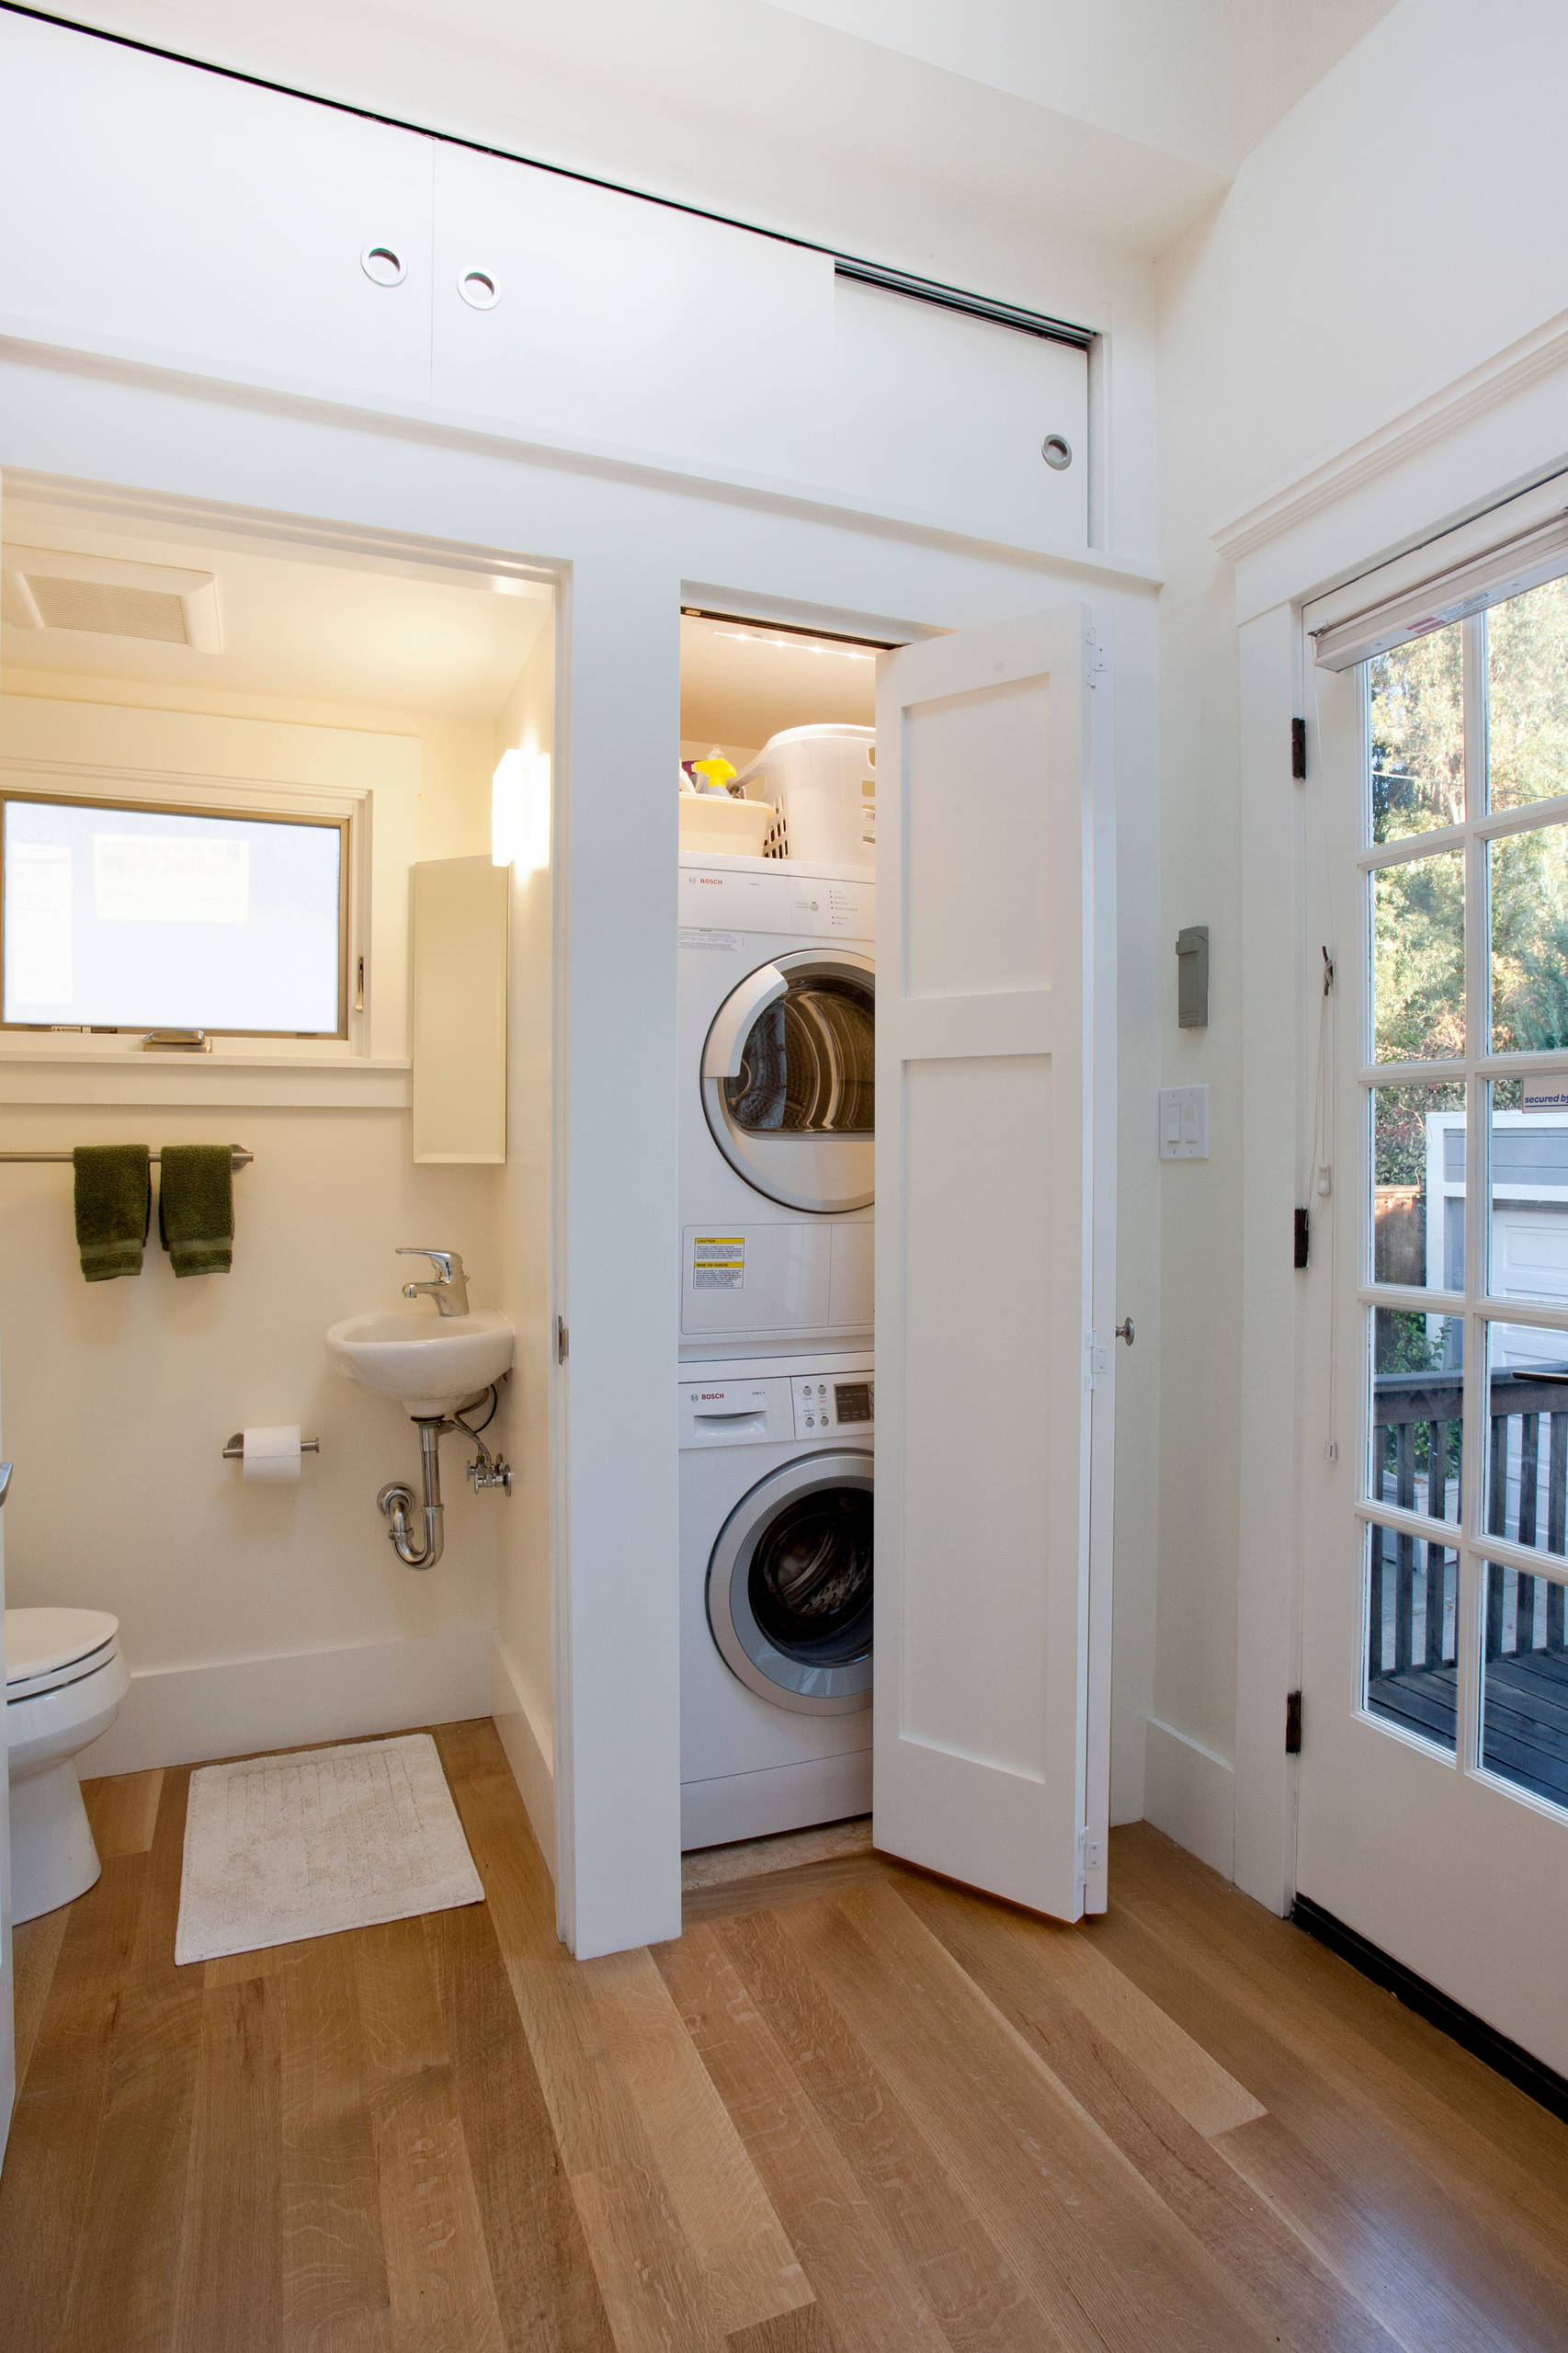 75 Beautiful Small Laundry Closet Pictures Ideas December 2020 Houzz